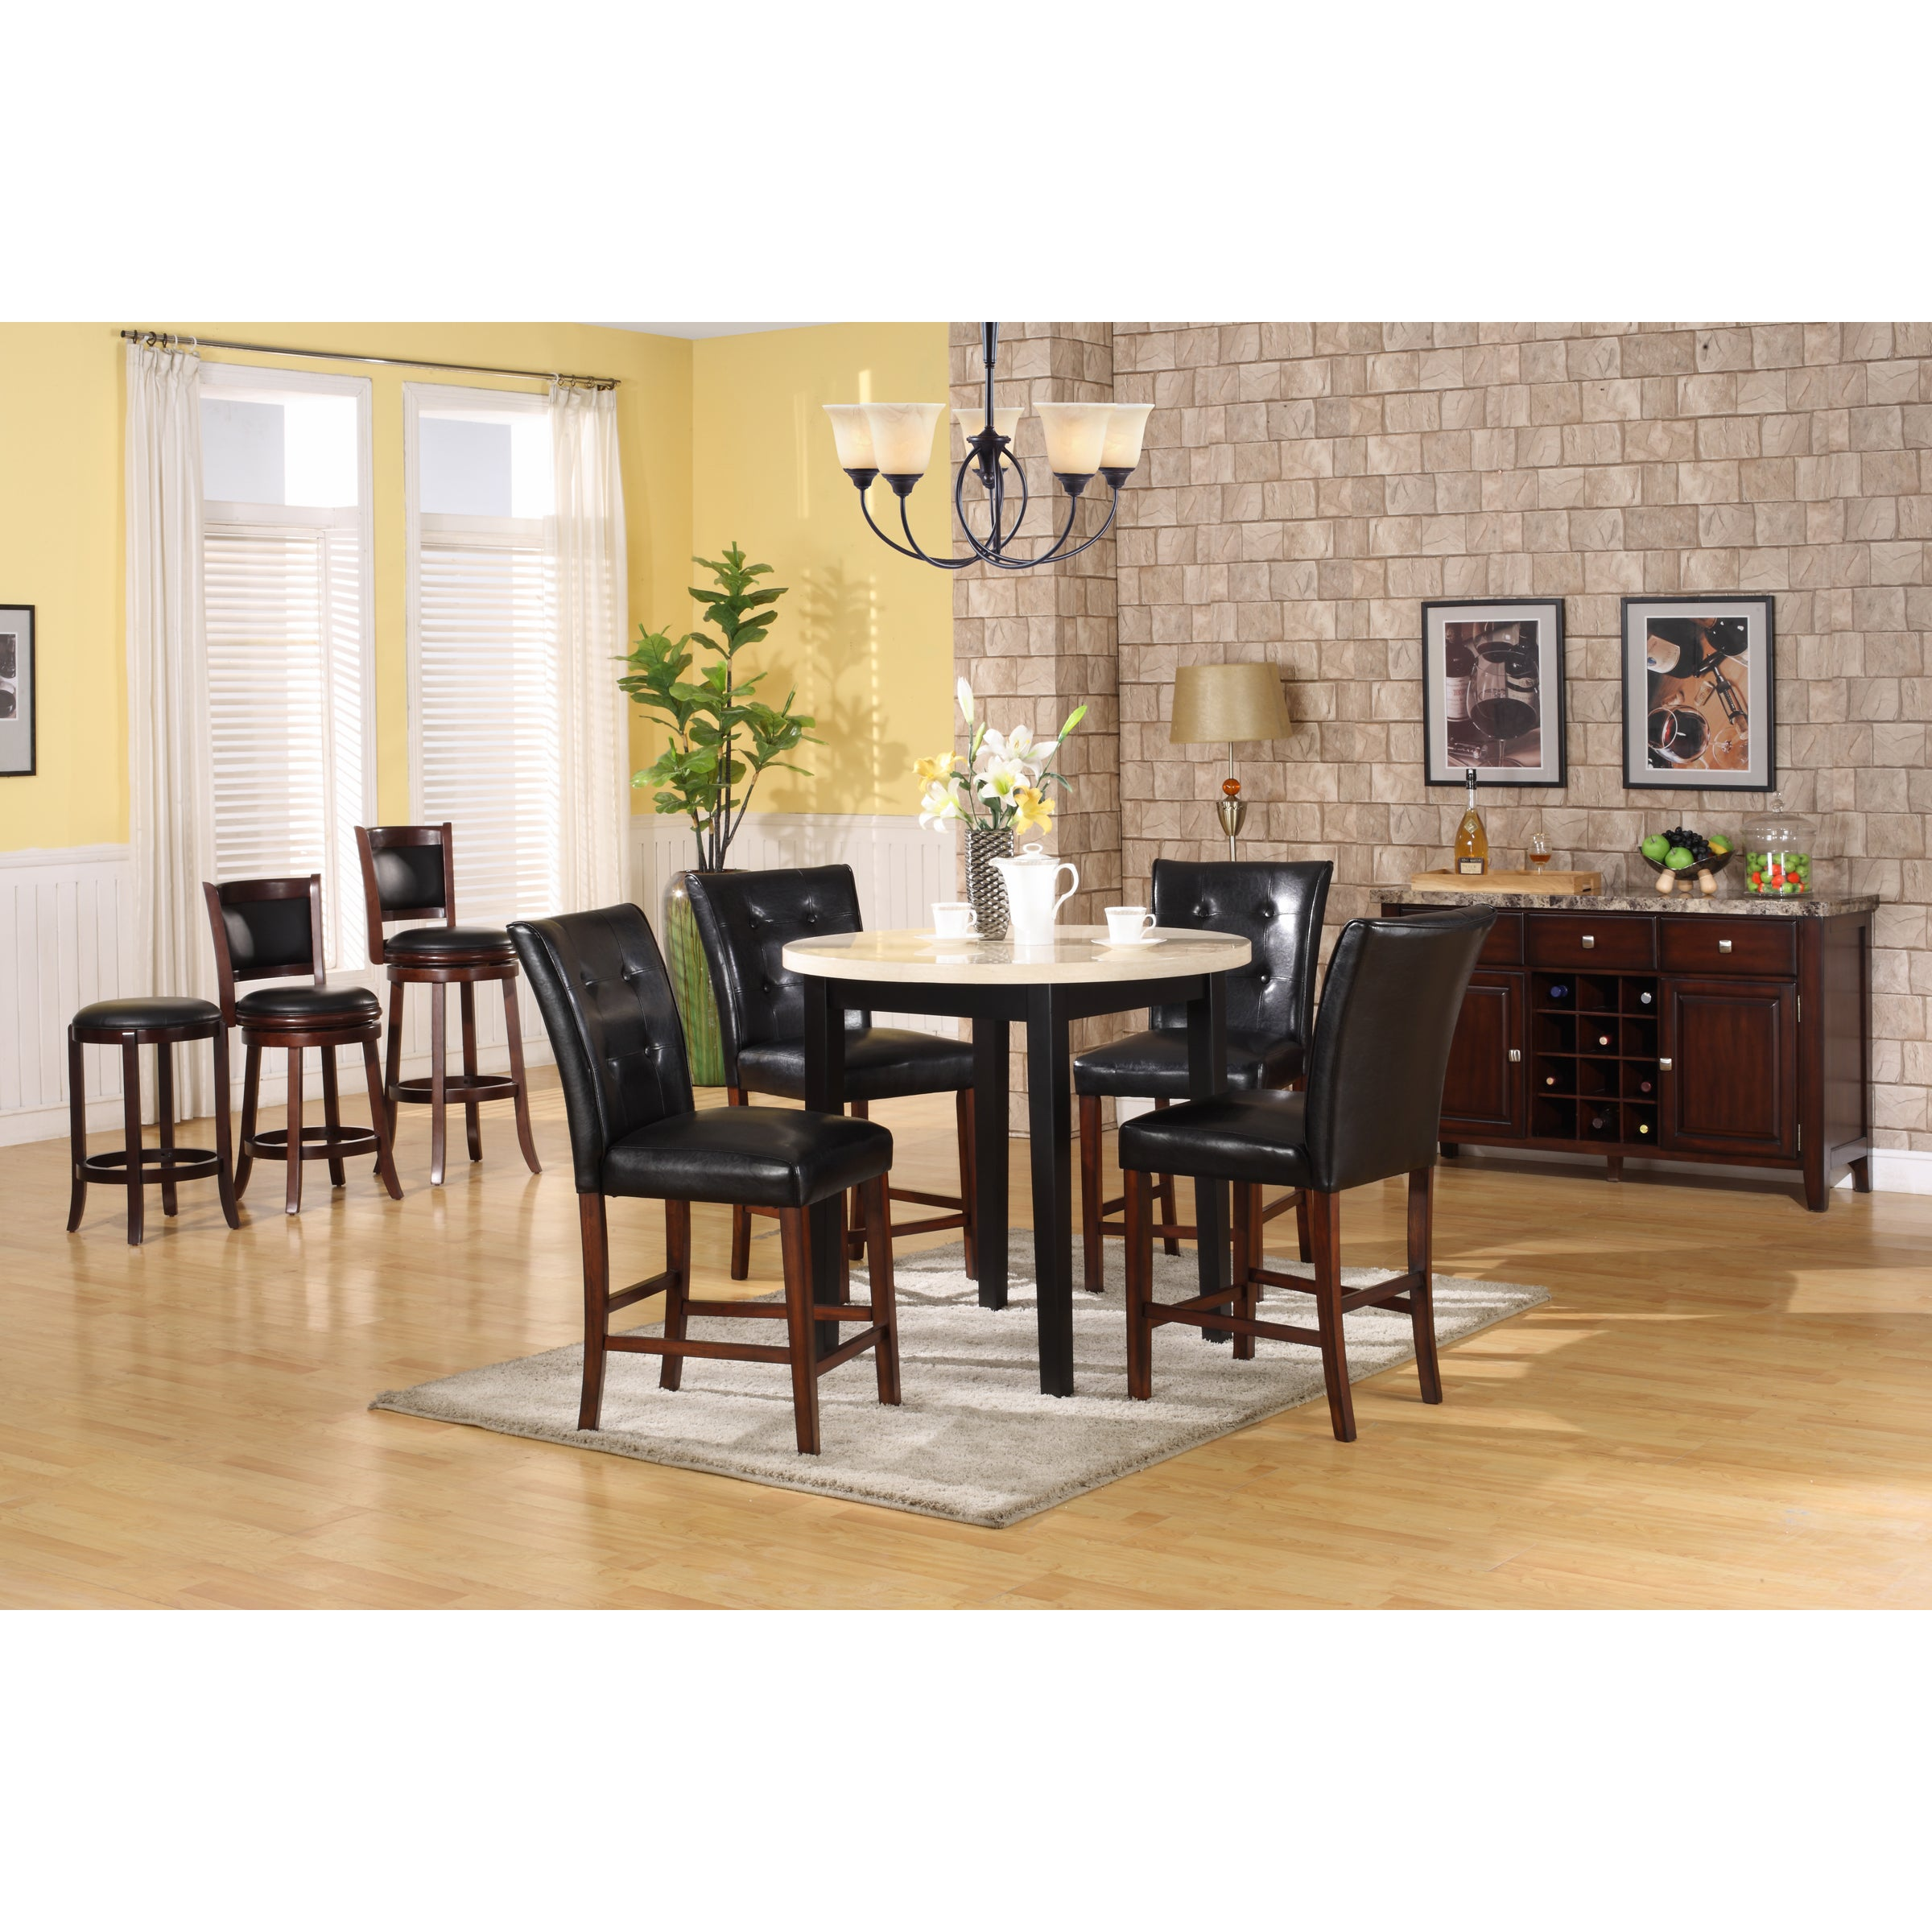 Radian White Faux-marble Table with Black Barstools